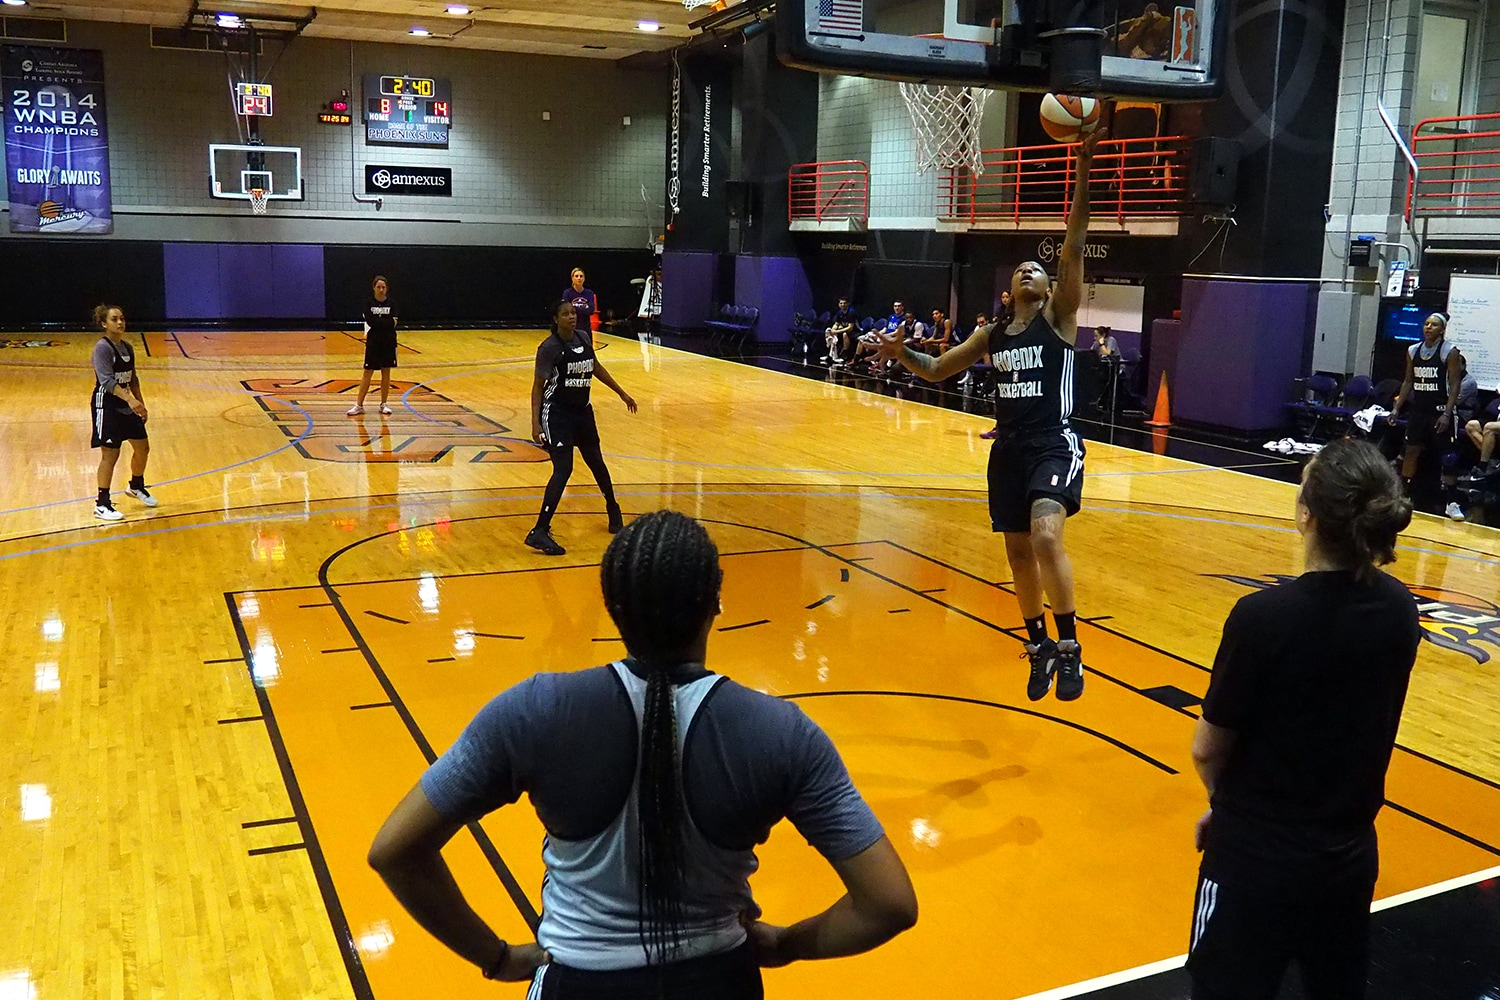 Day 5 of Phoenix Mercury Training Camp.